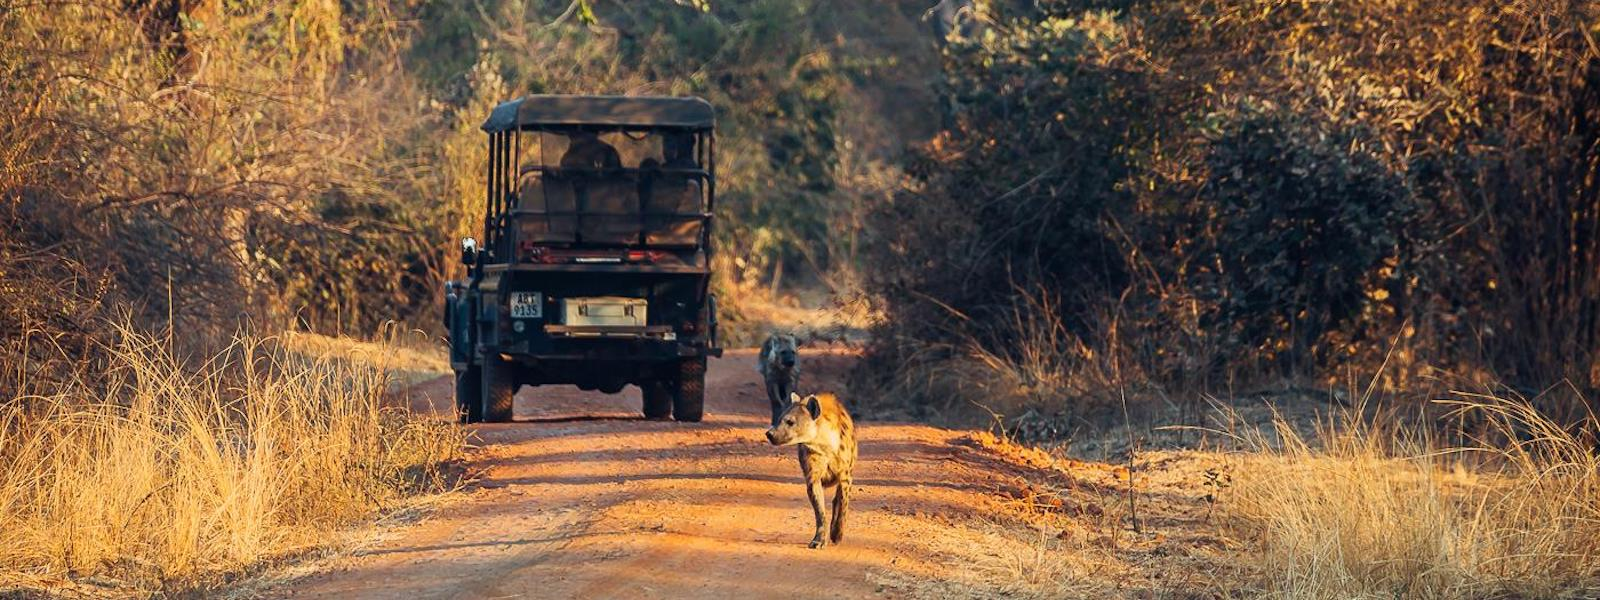 south luangwa safari vehicle and hyenas